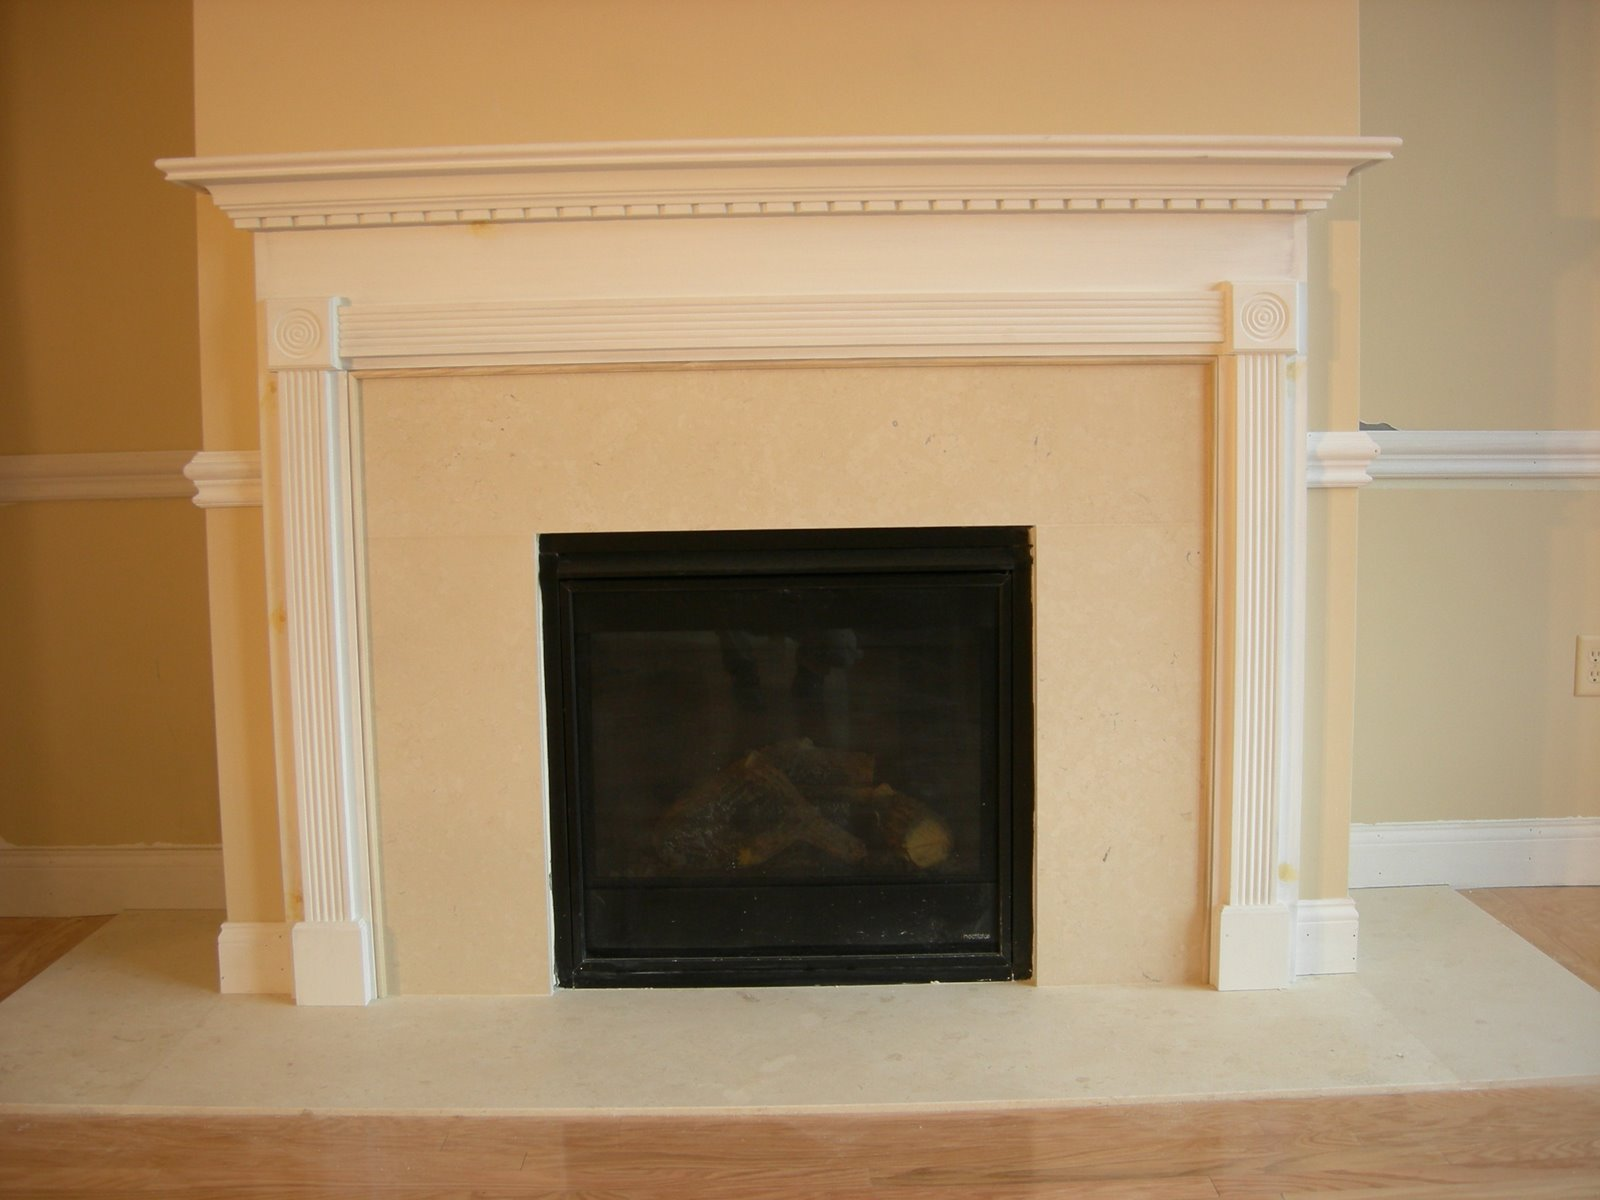 Installing A New Fireplace Mantel I Gas Fireplace insert and mantel